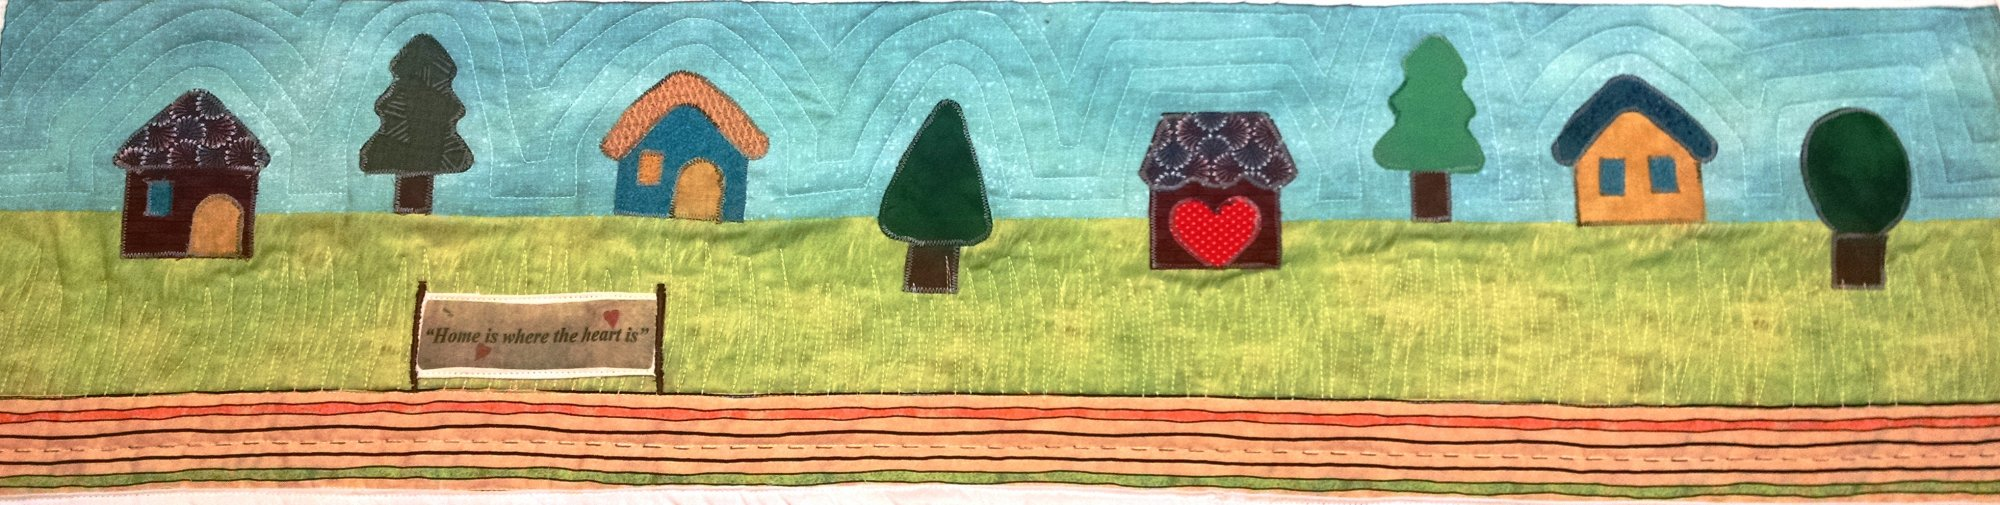 Row by Row Kit 2016 Home is Where the Heart is Applique houses includes banner